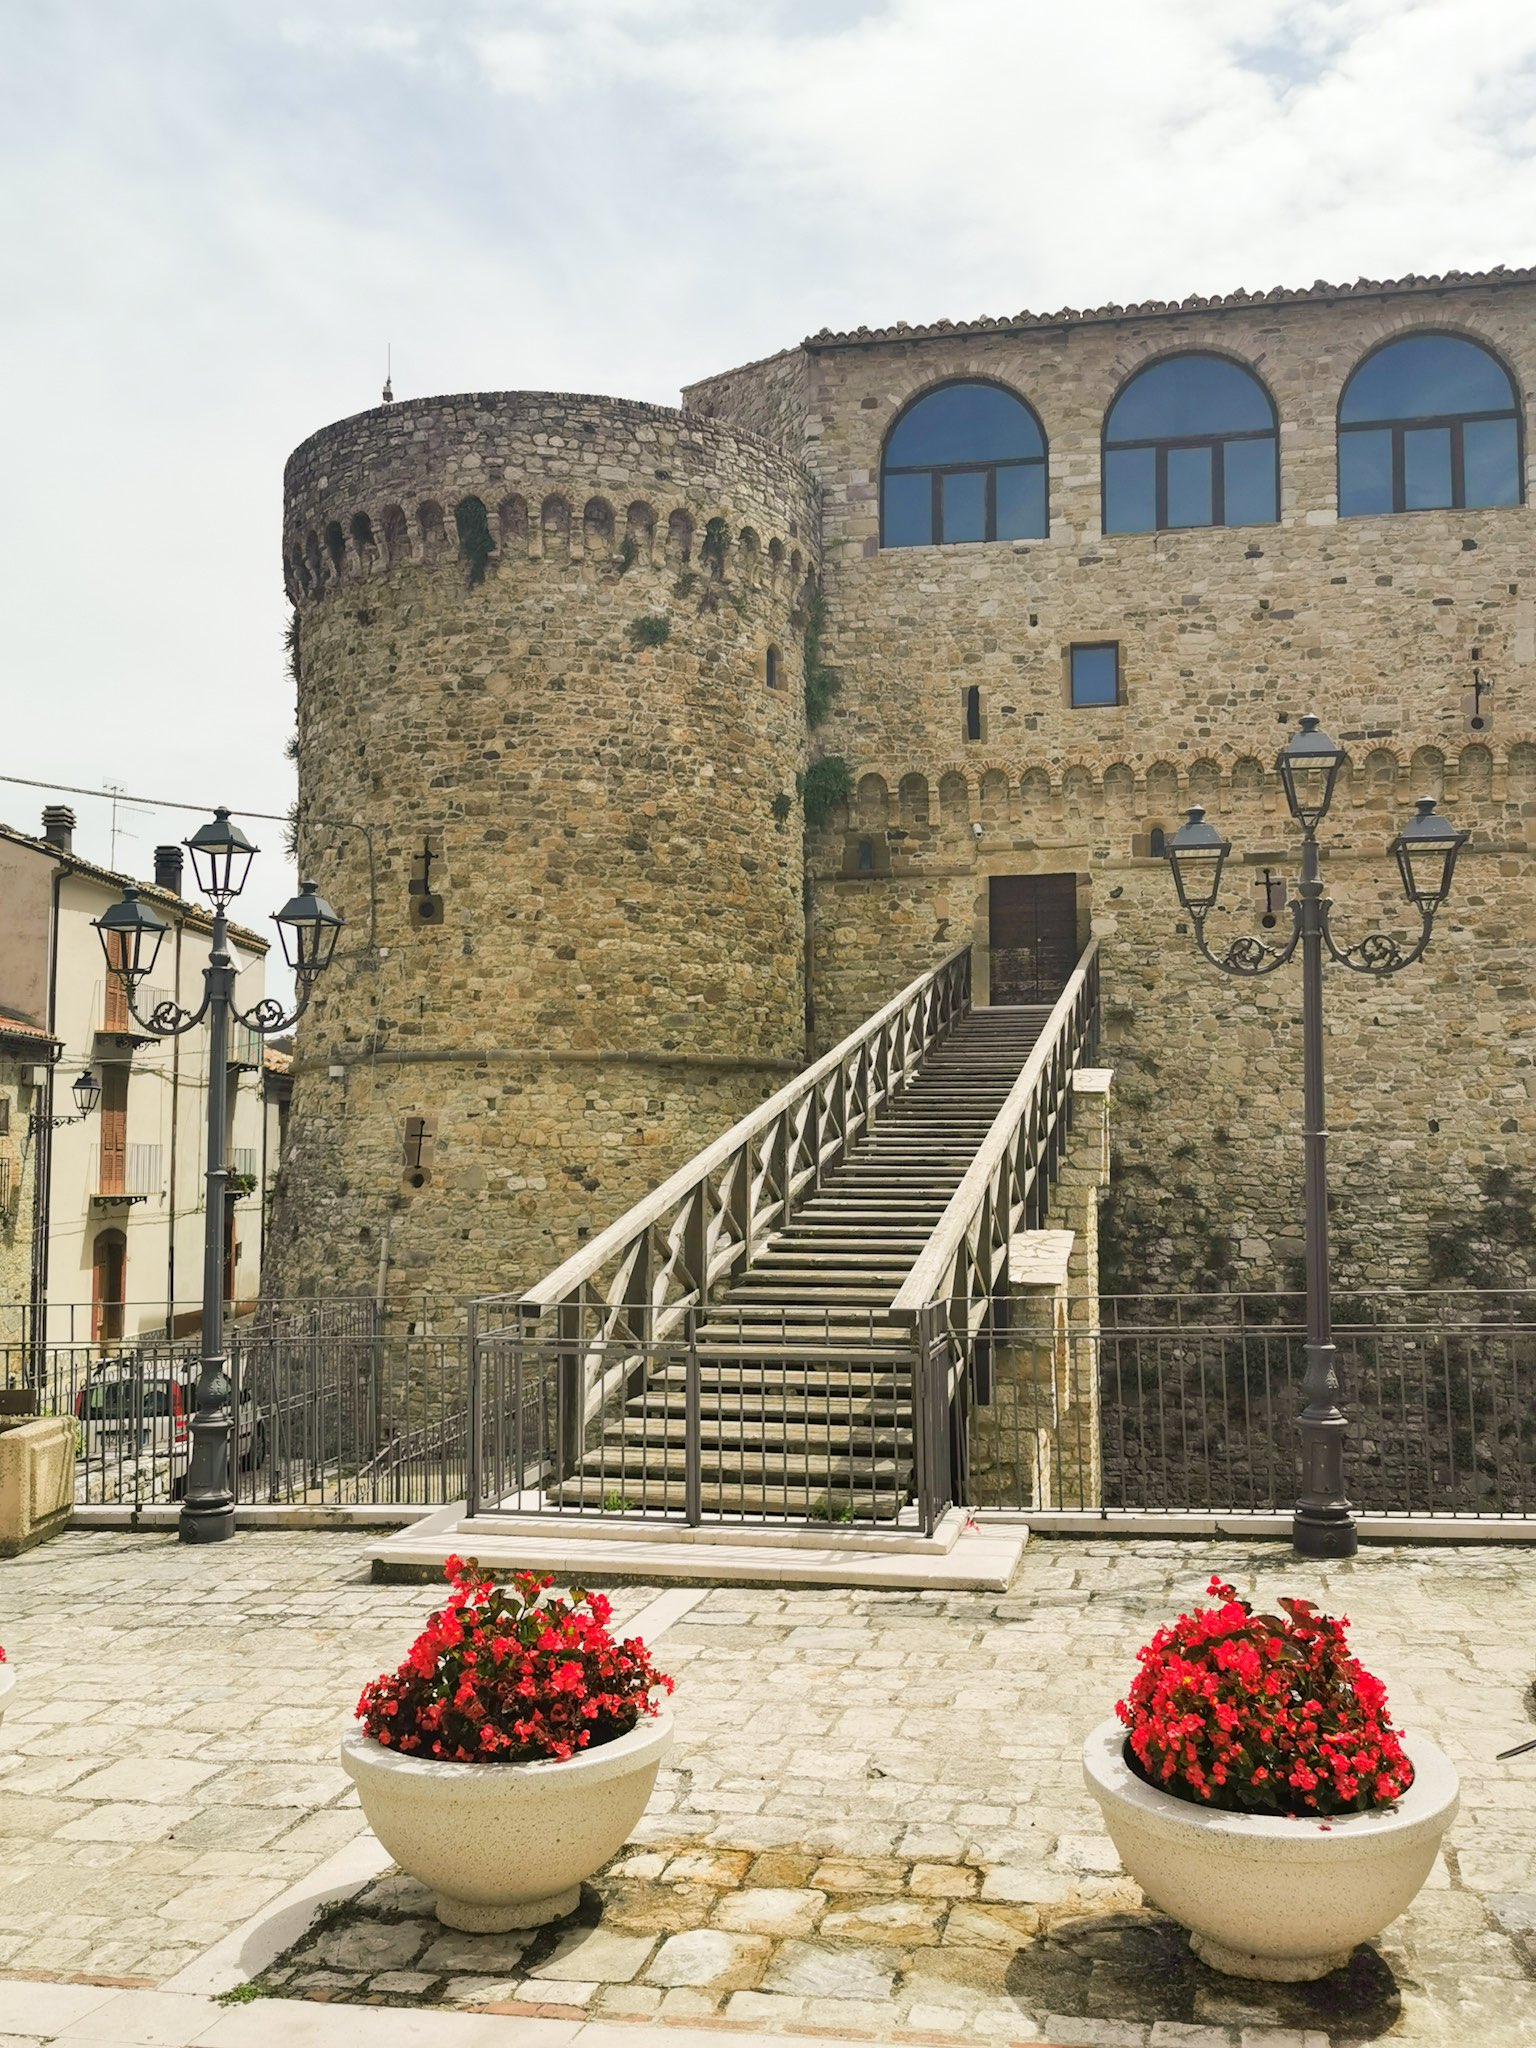 The Angevine castle of Civitacampomarano, in the Italian region of Molise